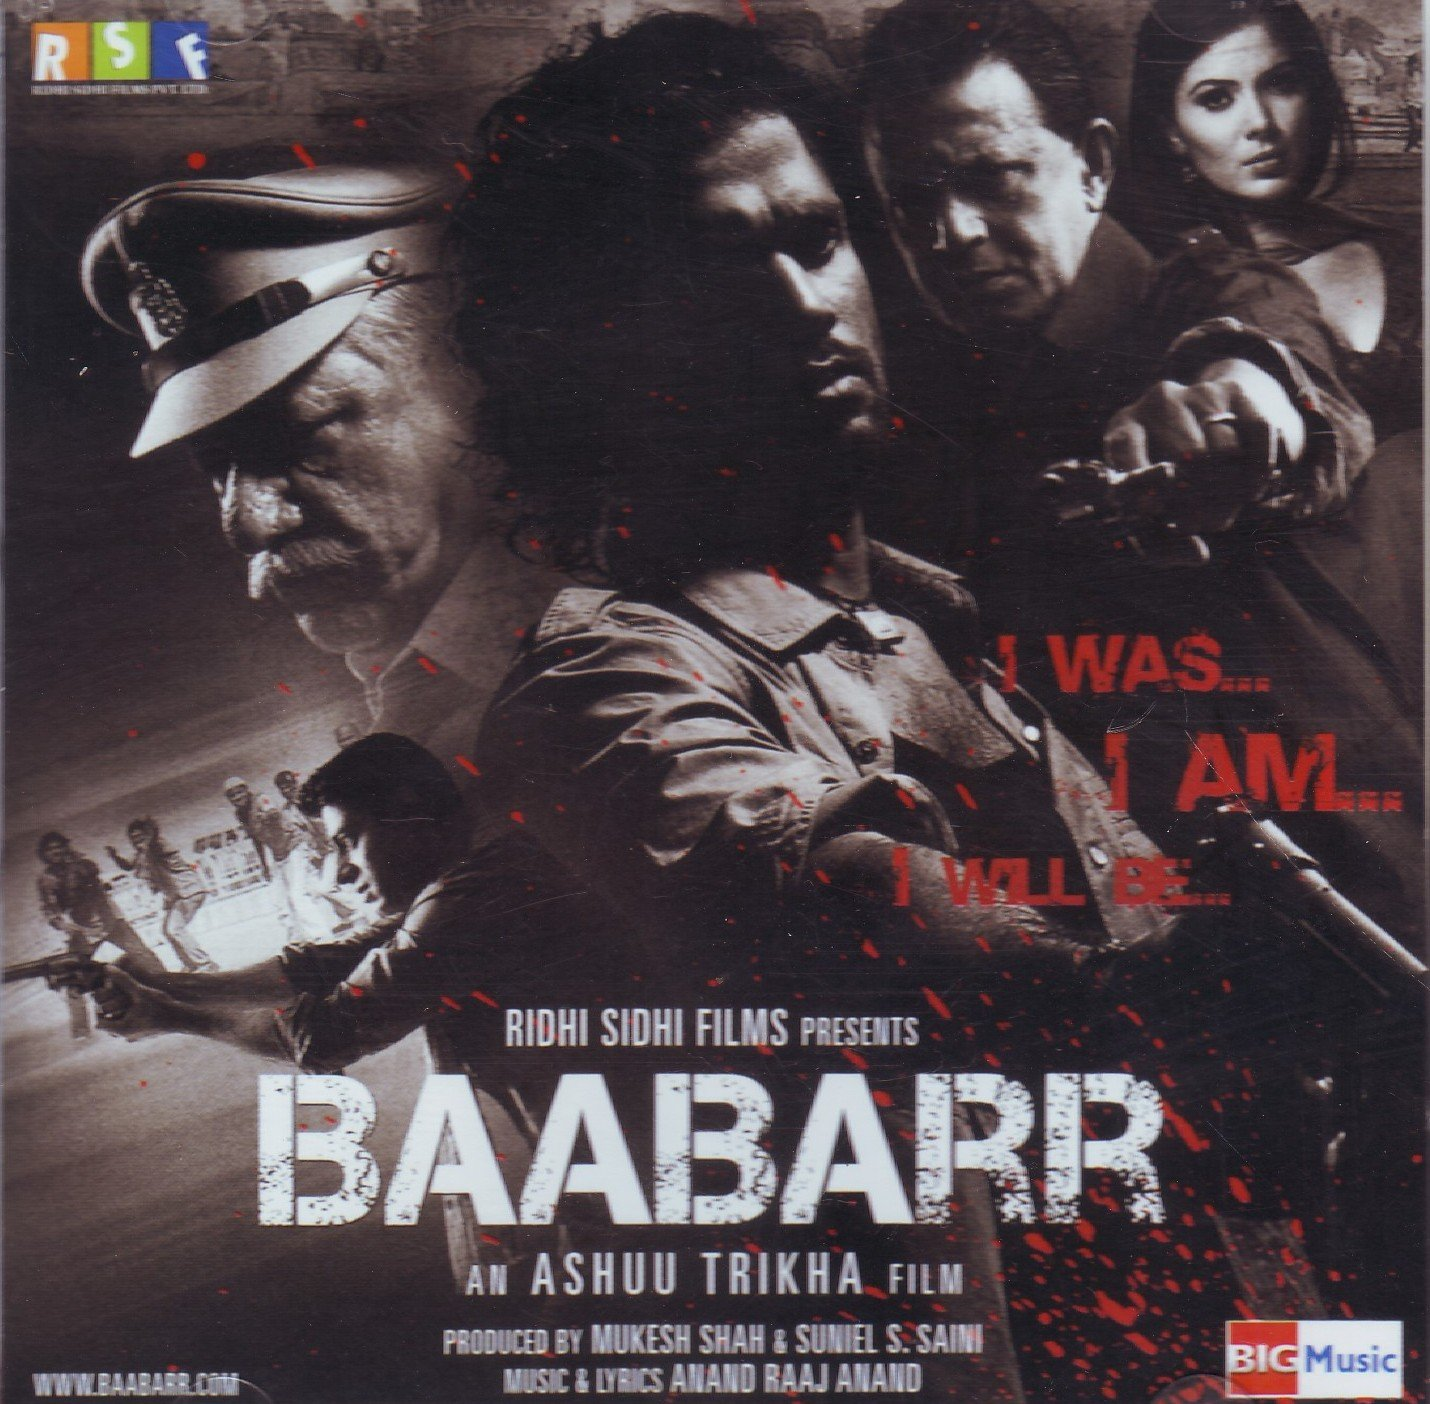 Baabarr Film Max 69% OFF Soundtrack Bollywood Hindi 70% OFF Outlet Music Movie Songs